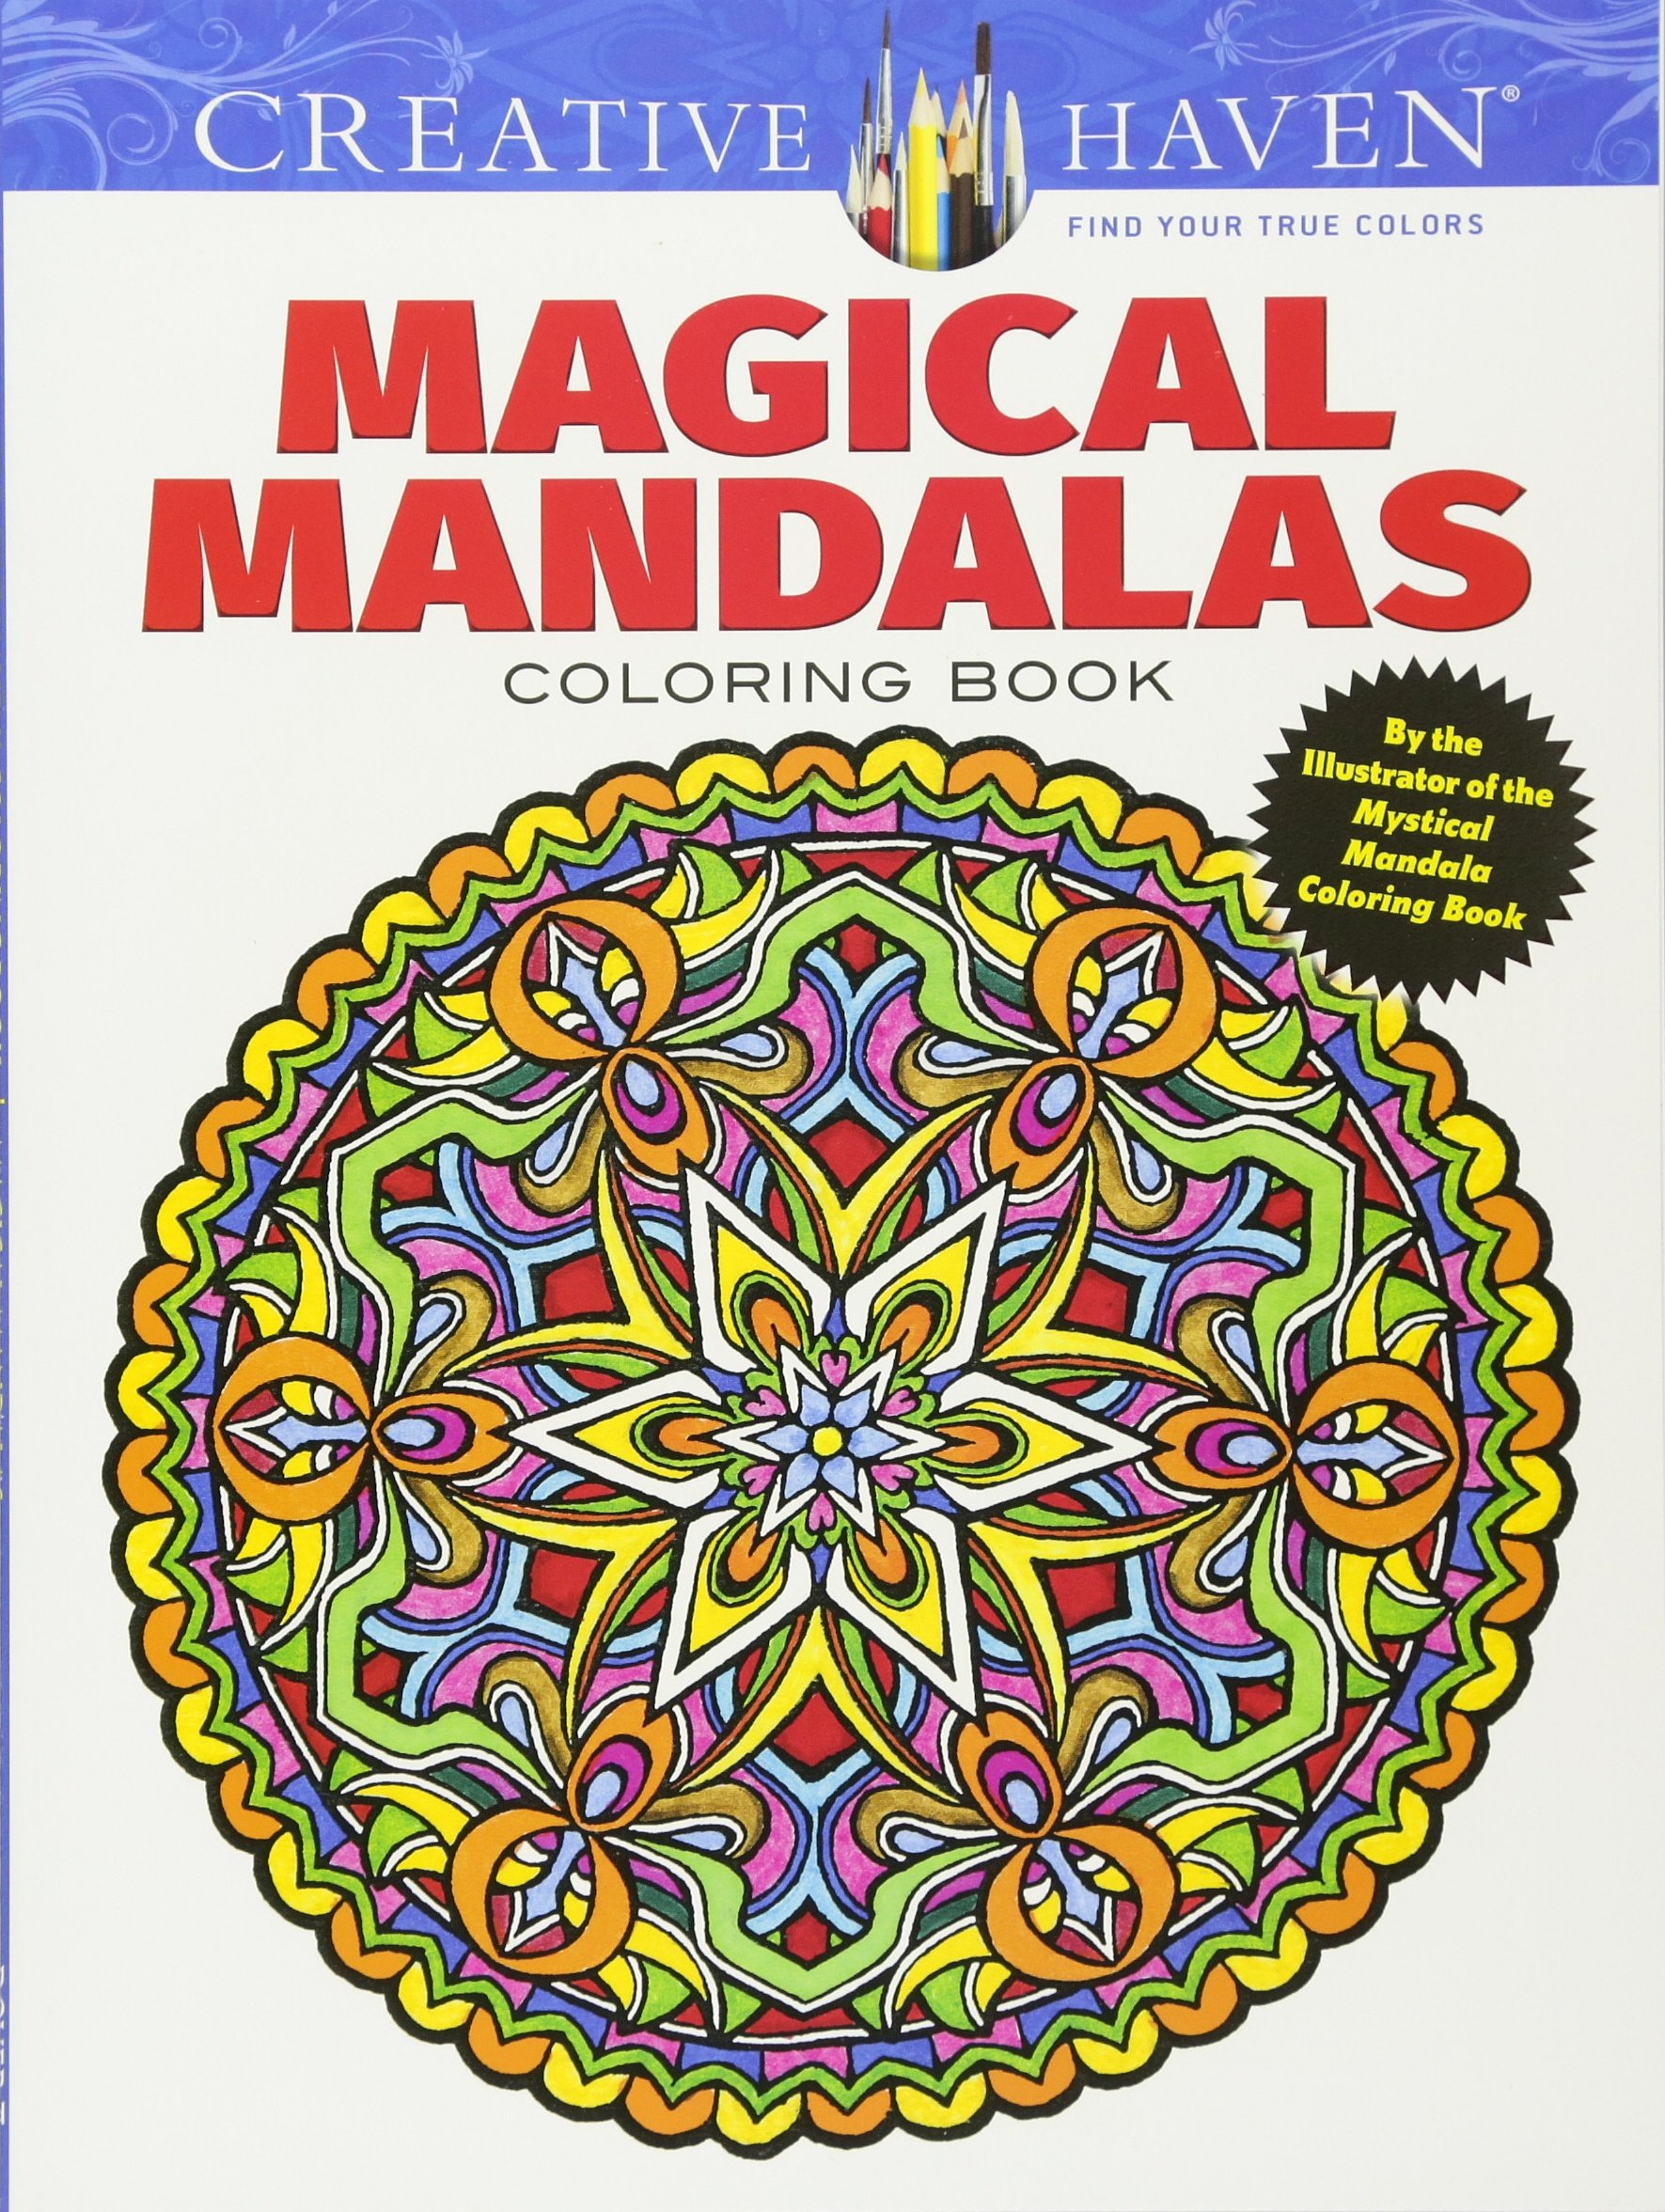 creative haven magical mandalas coloring book by the illustrator of the mystical mandala coloring book adult coloring alberta hutchinson